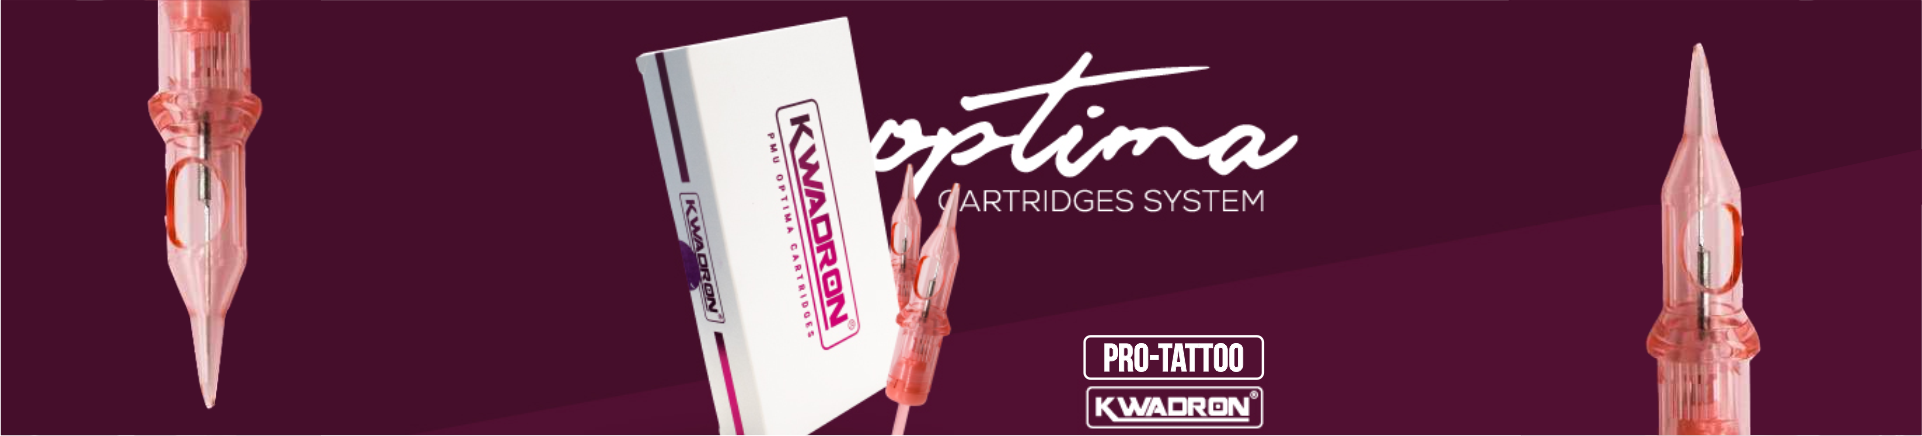 Kwadron optima Cartridges